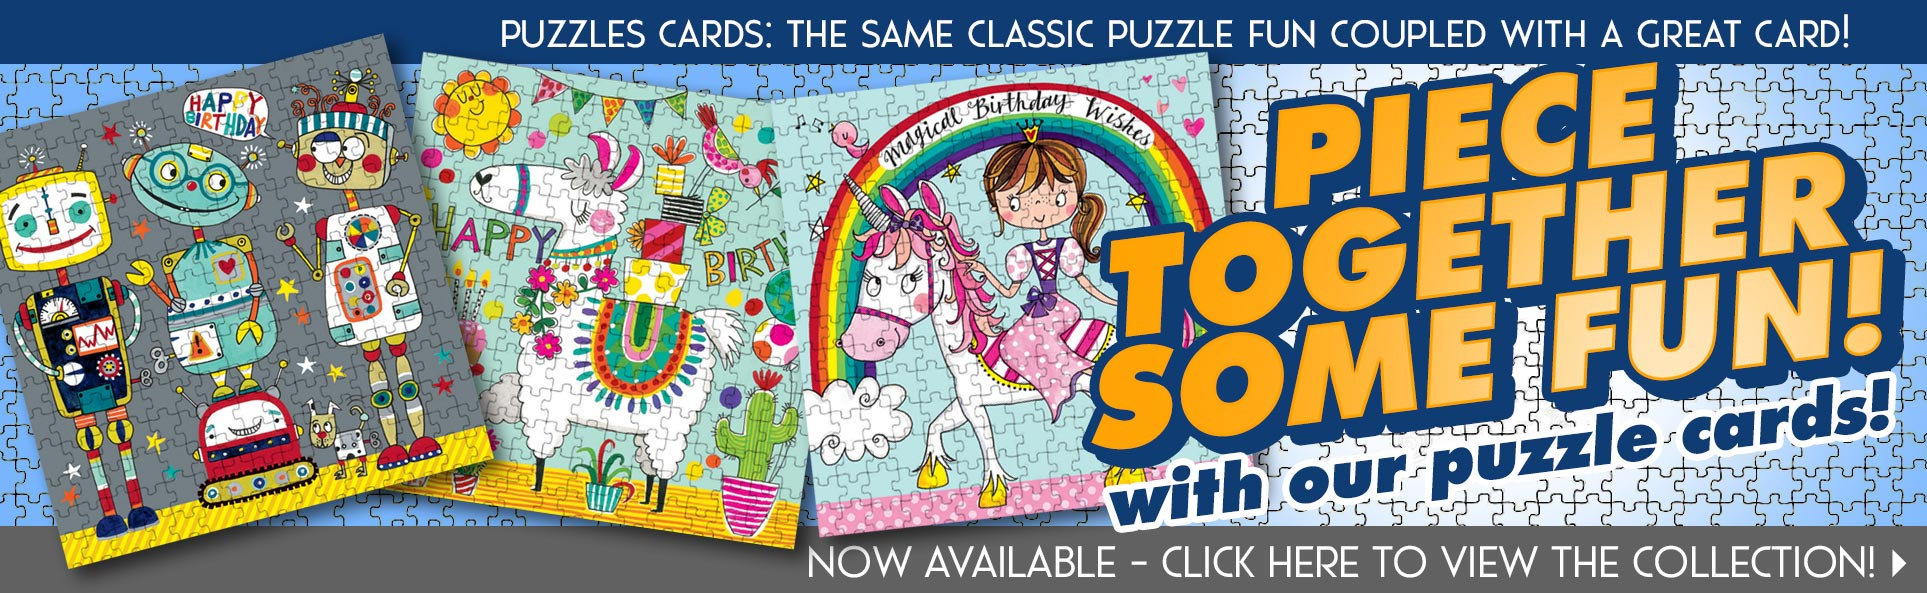 Piece Together Some Fun with Rachel Ellen Jigsaw Puzzle Cards!